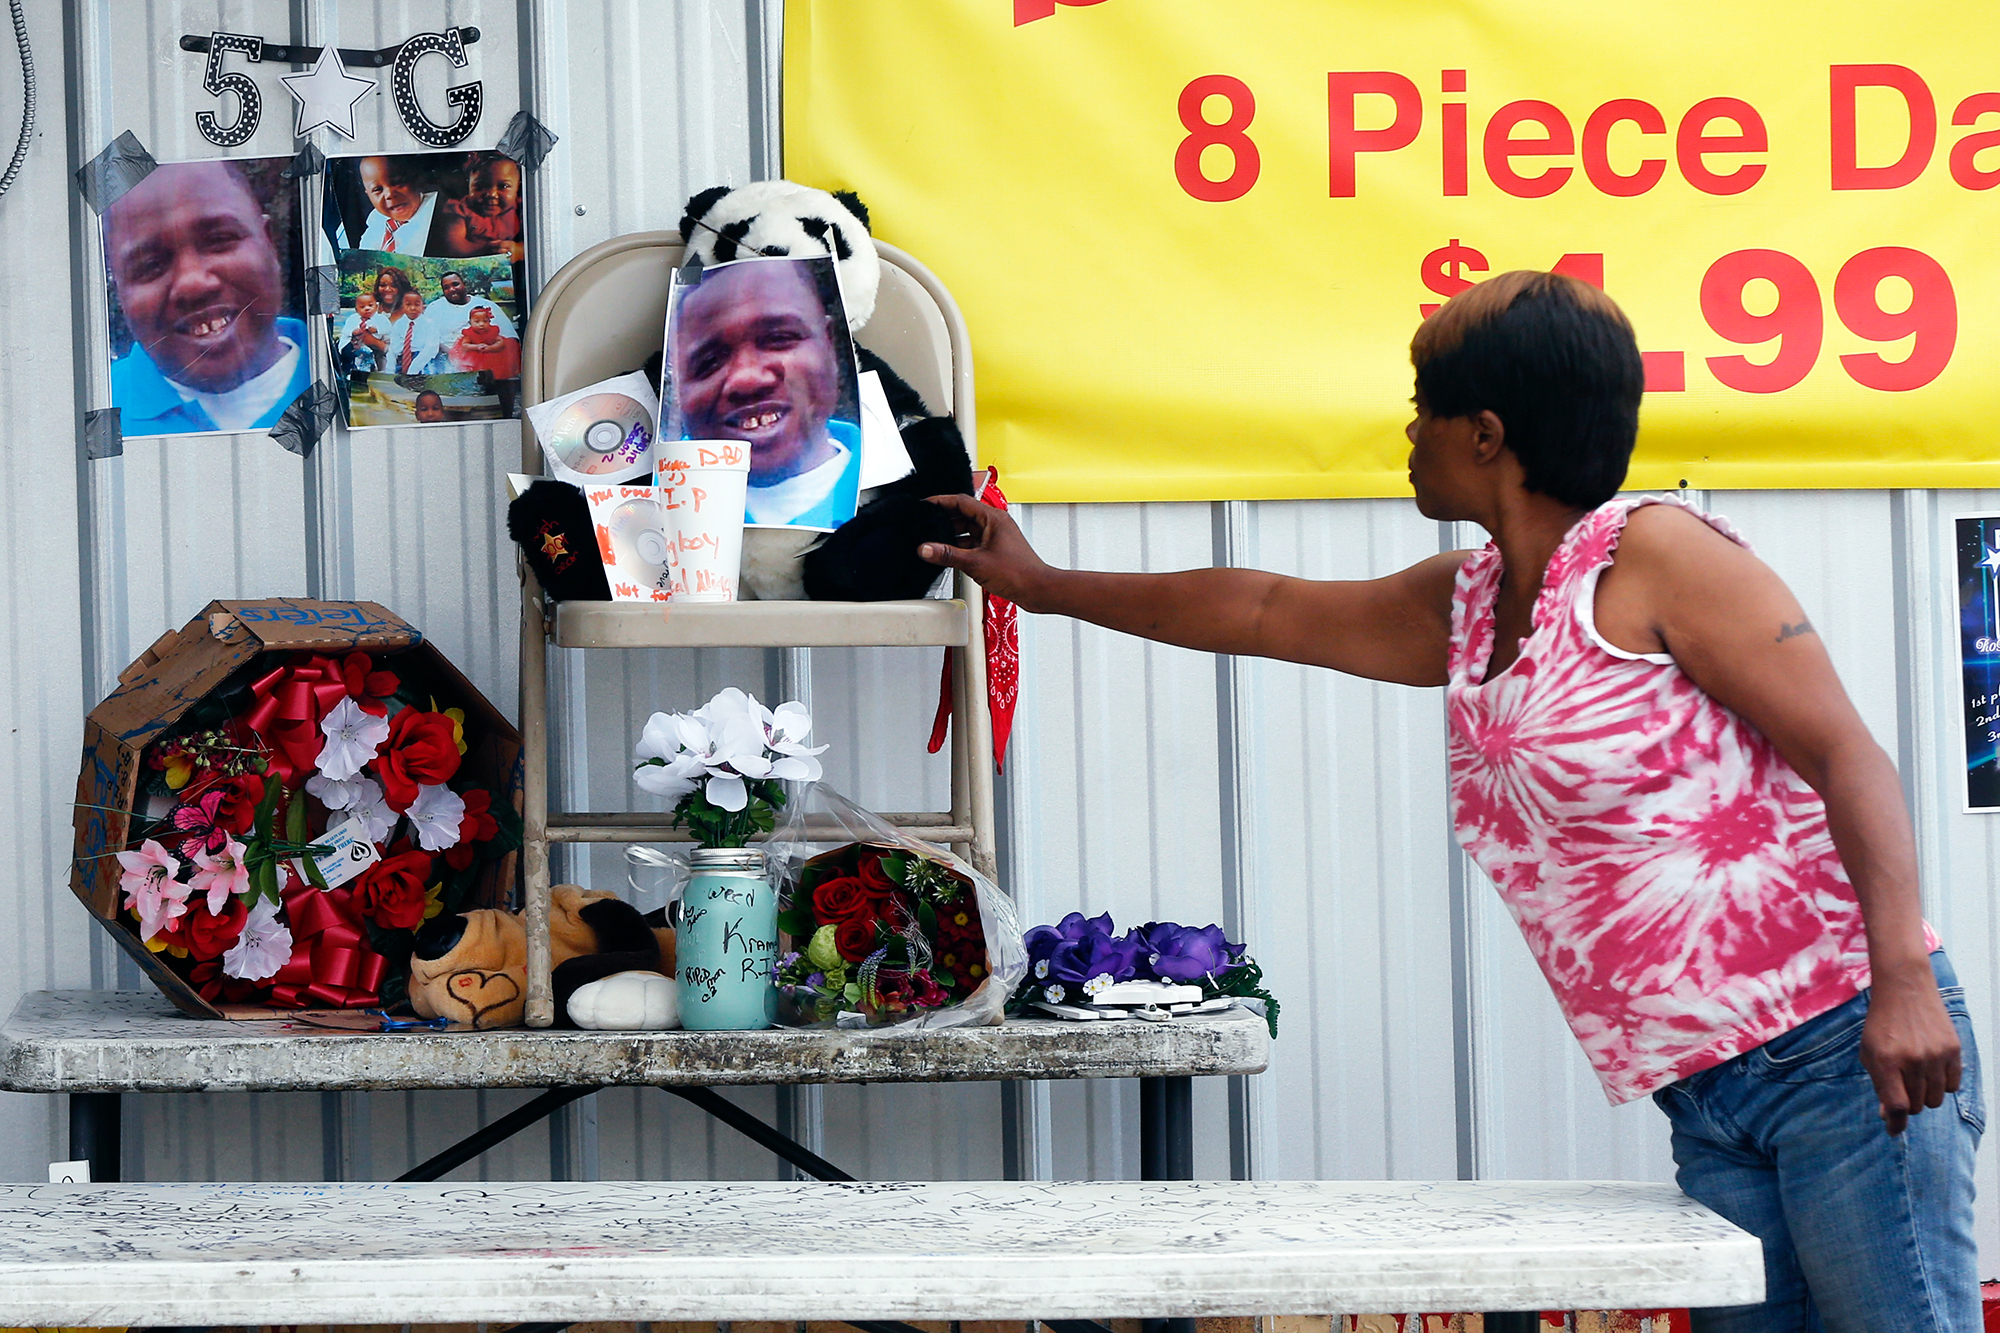 Nishka Johnson touches a makeshift memorial for Alton Sterling, in Baton Rouge, La., on July 6, 2016.